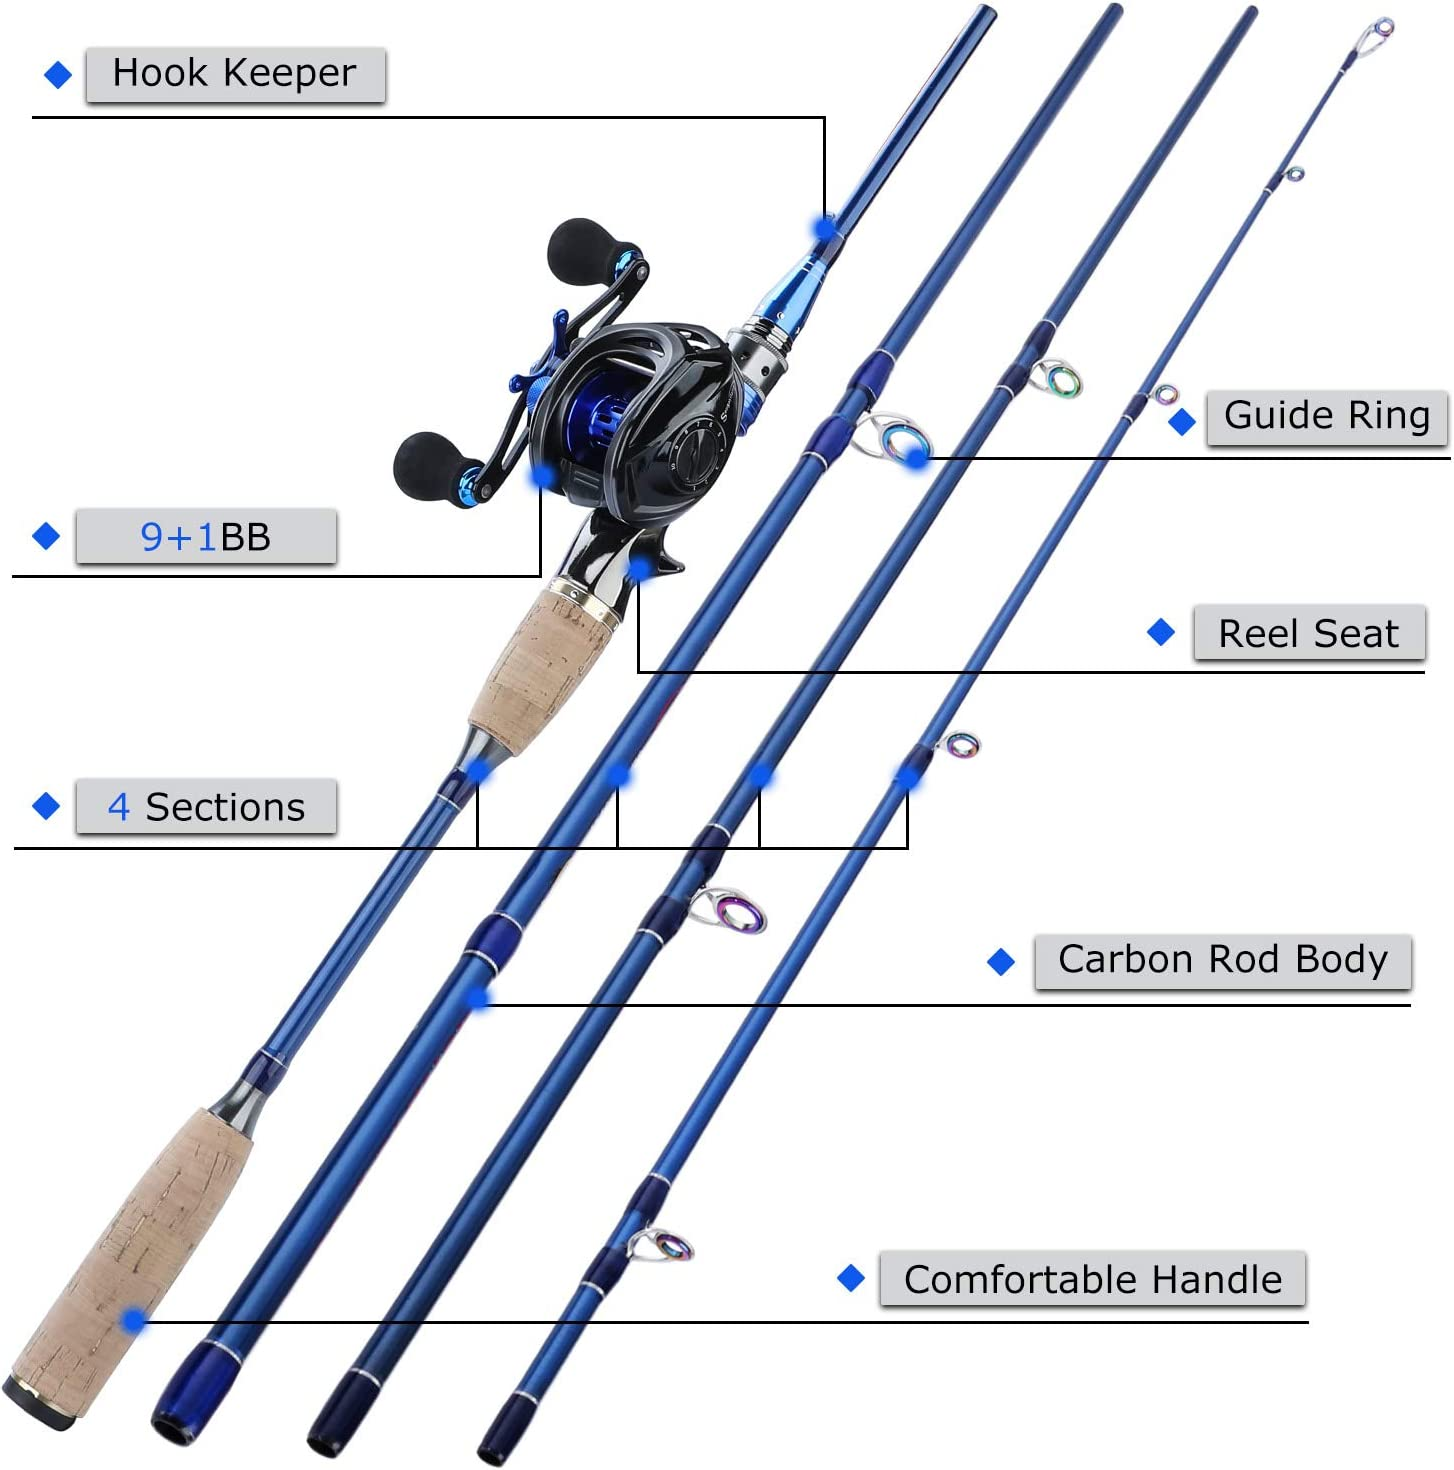 Lightweight Carbon Fiber Fishing Pole and 11+1BB Corrosion Resistant Bearings Fishing Reel-Right Left Hand for Travel 4-Piece Salt Fresh Water Sougayilang Fishing Baitcasting Combos